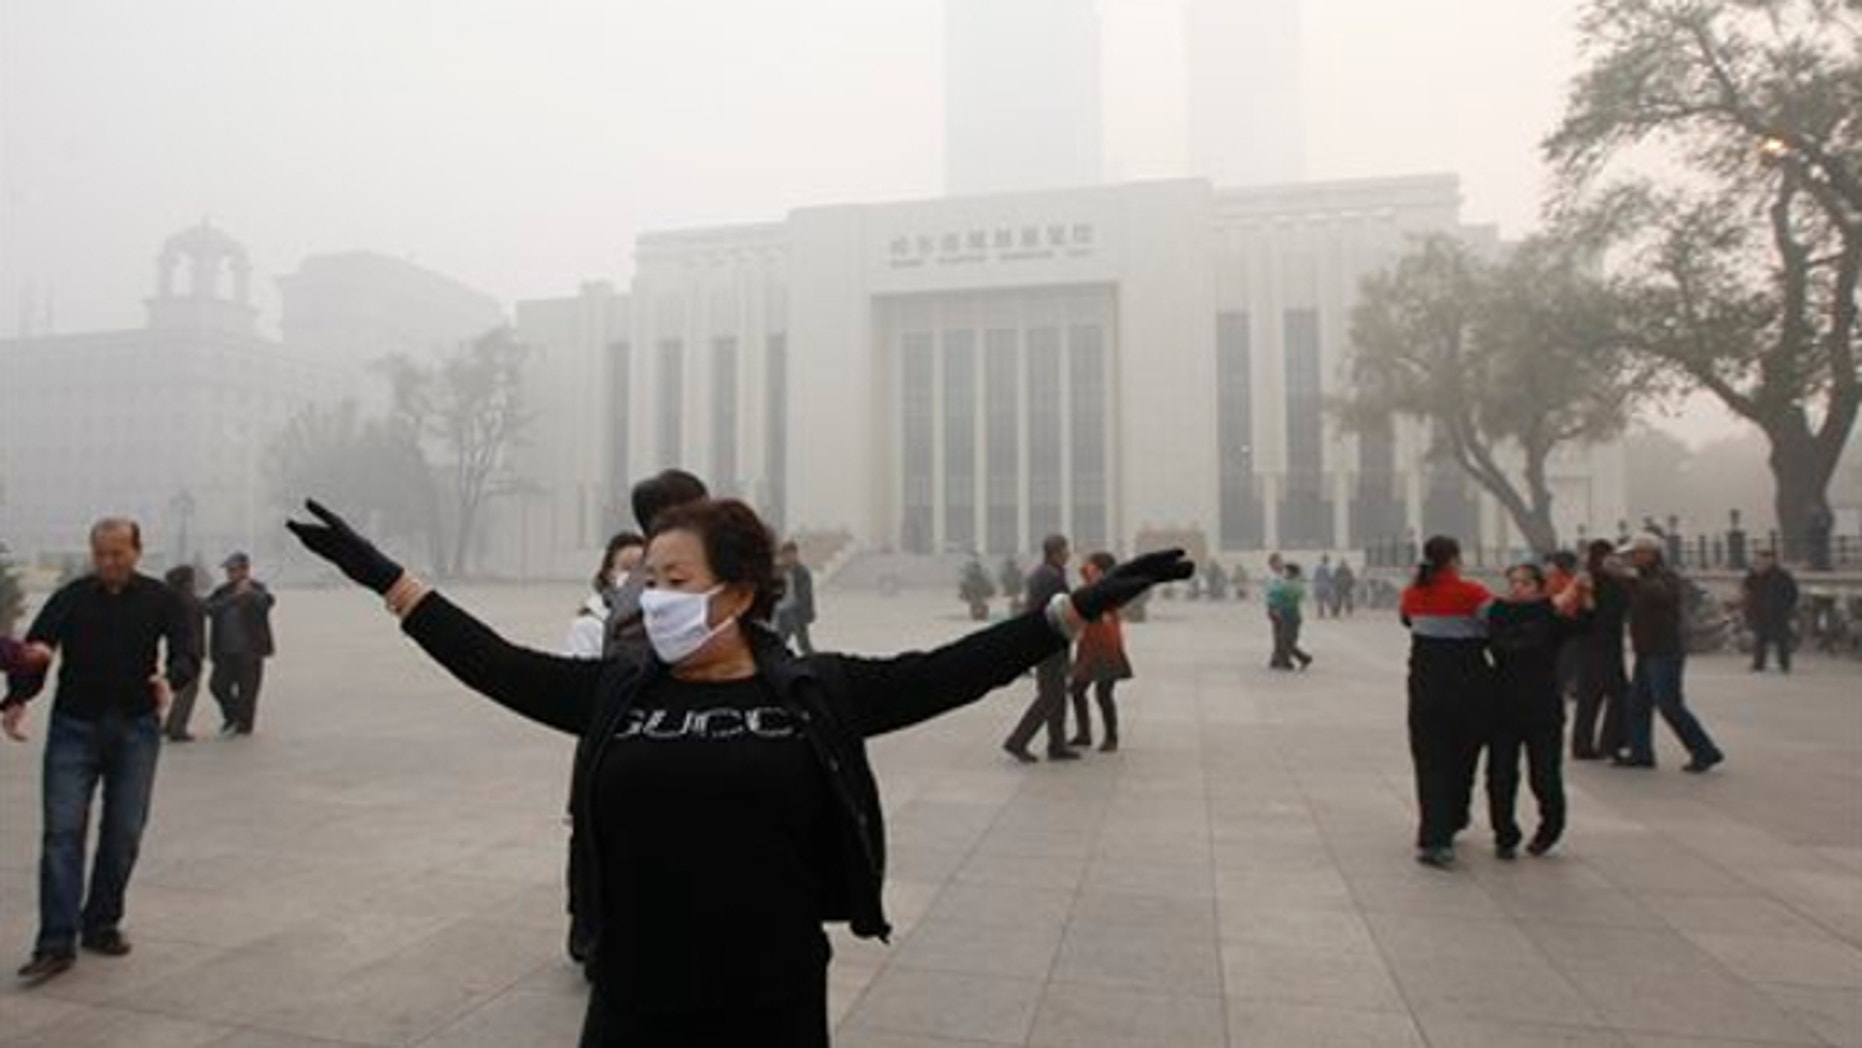 Oct. 21, 2013:  A Chinese woman wears a mask as she takes part in communal dancing during a day of heavy pollution in Harbin in northeast China's Heilongjiang province.